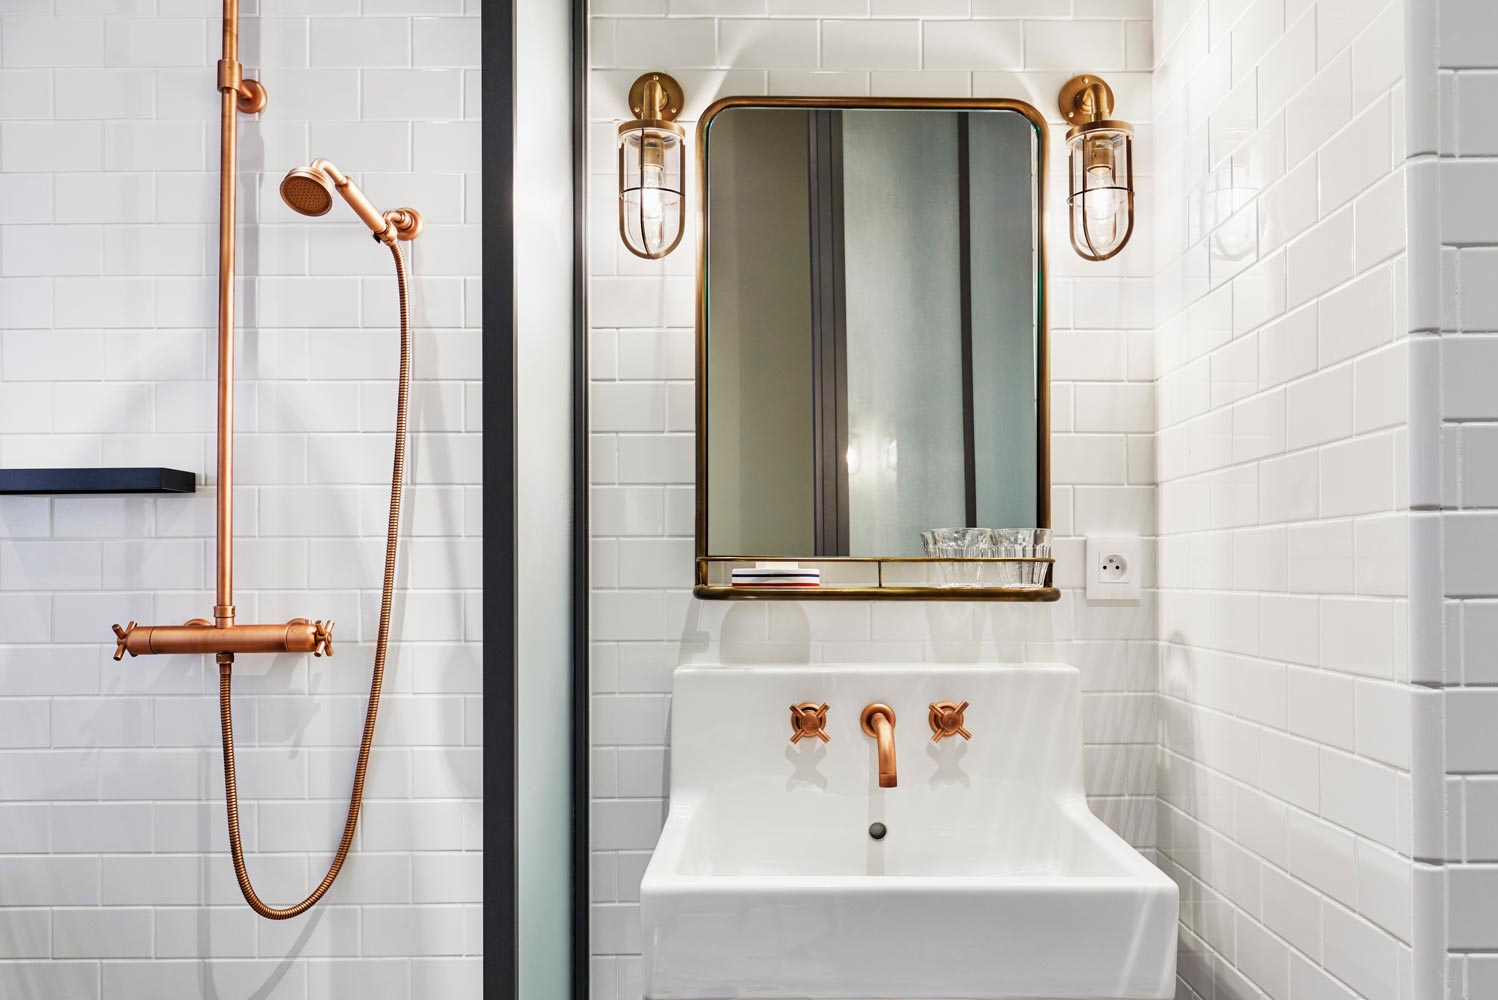 The hotel's classic French style is mixed with contemporary amenities.